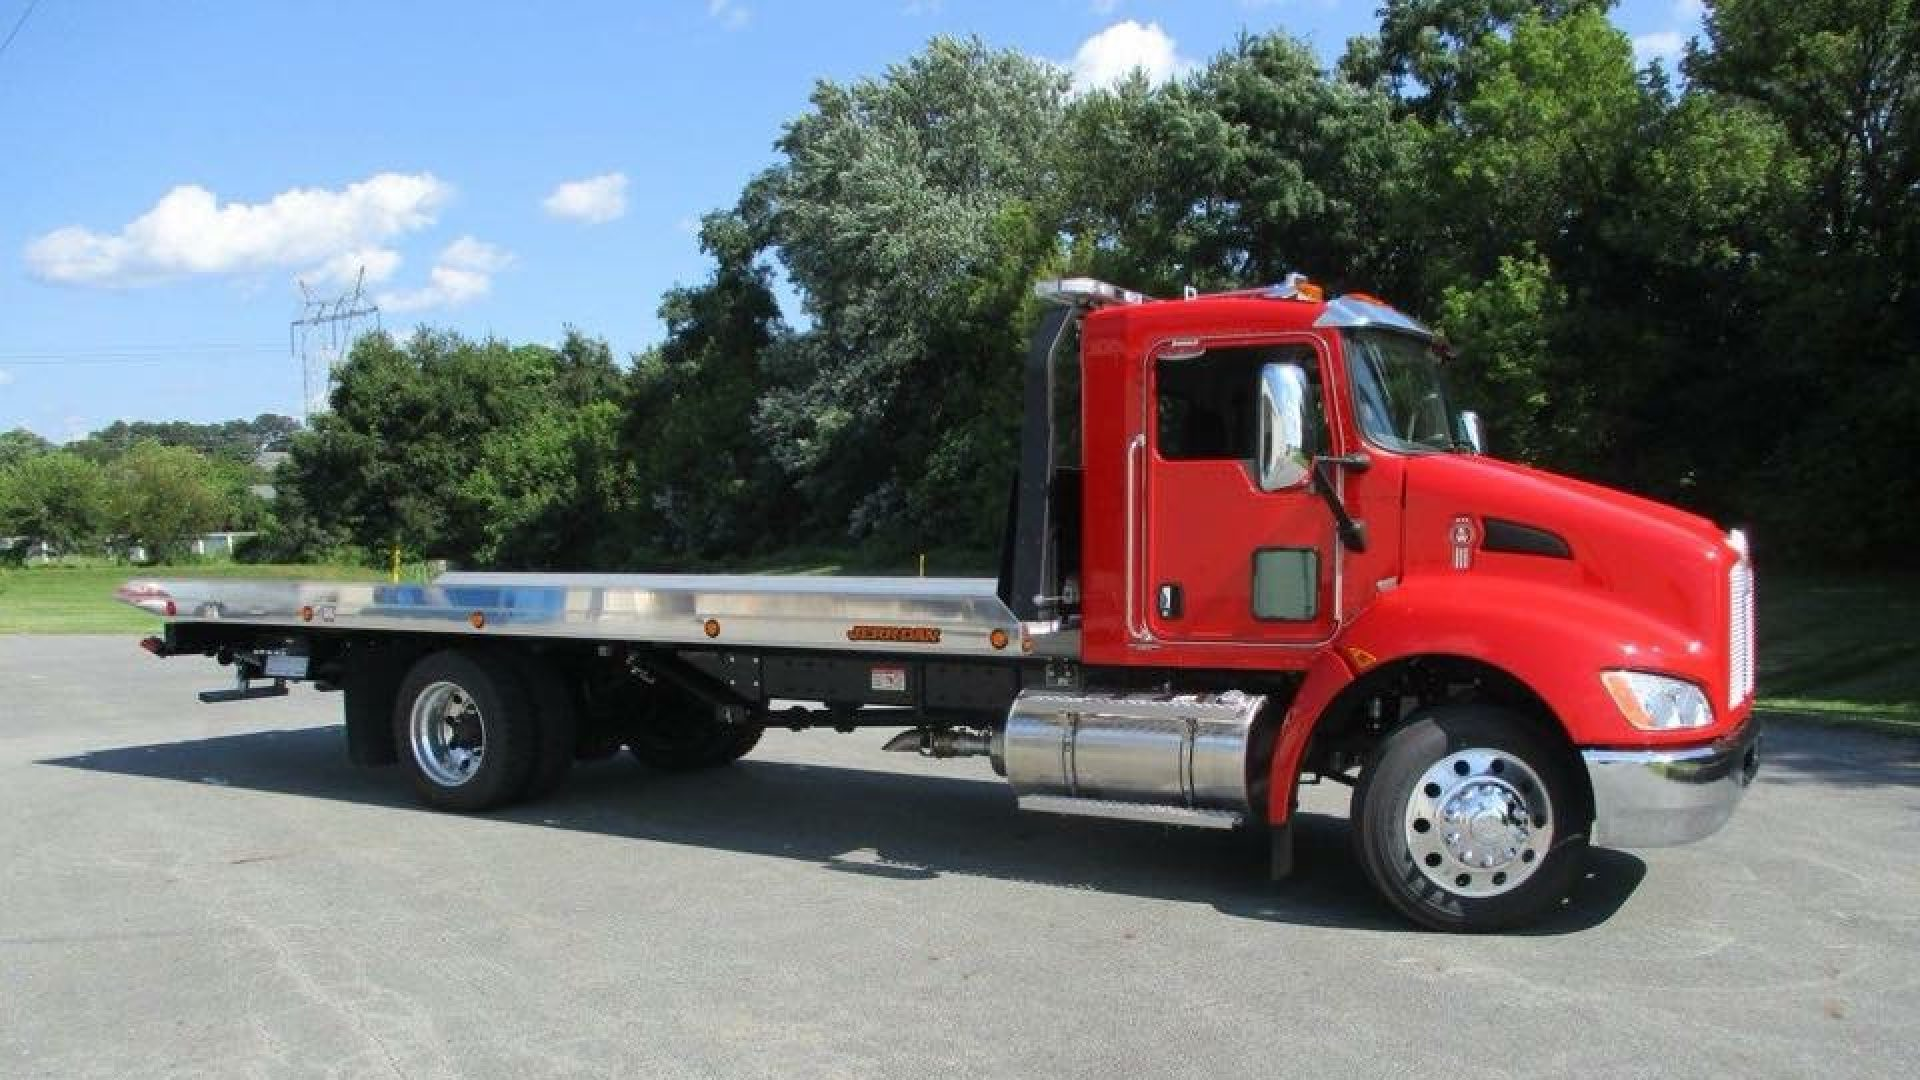 Cheap Tow Truck Near Me >> Nashville Tow Truck Towing Service L Tow Truck Towing L